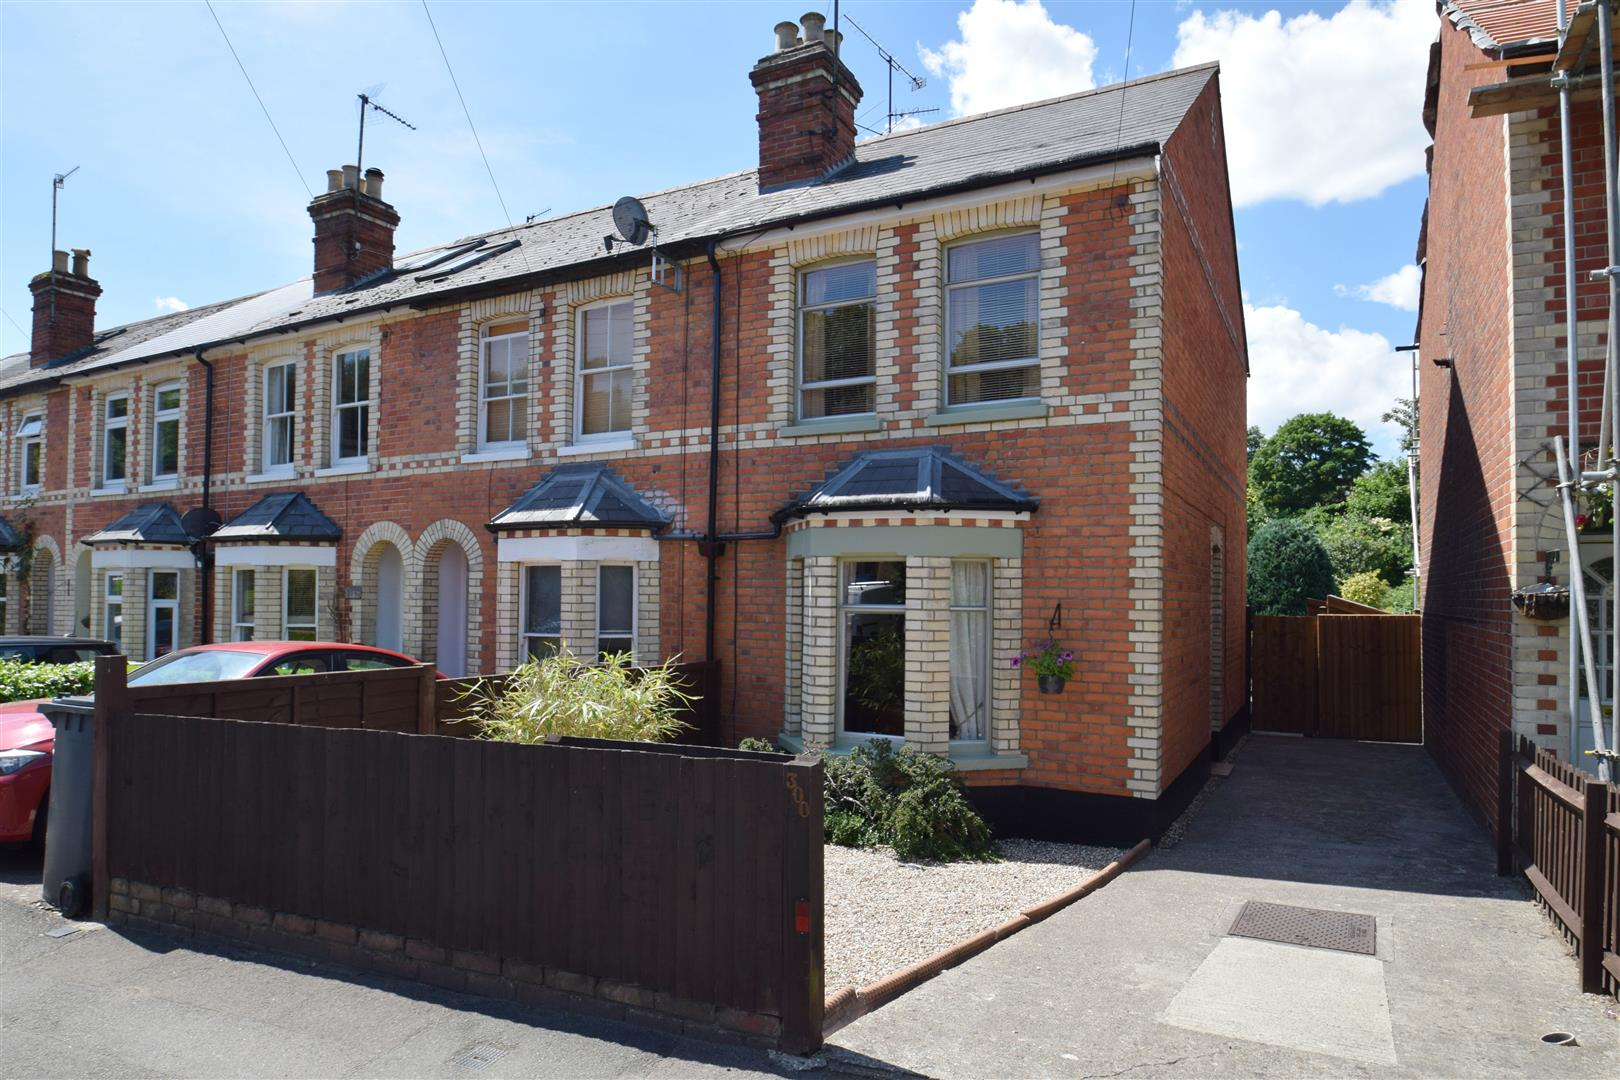 3 bedroom house for sale in reading for 3 bedroom houses to buy in reading